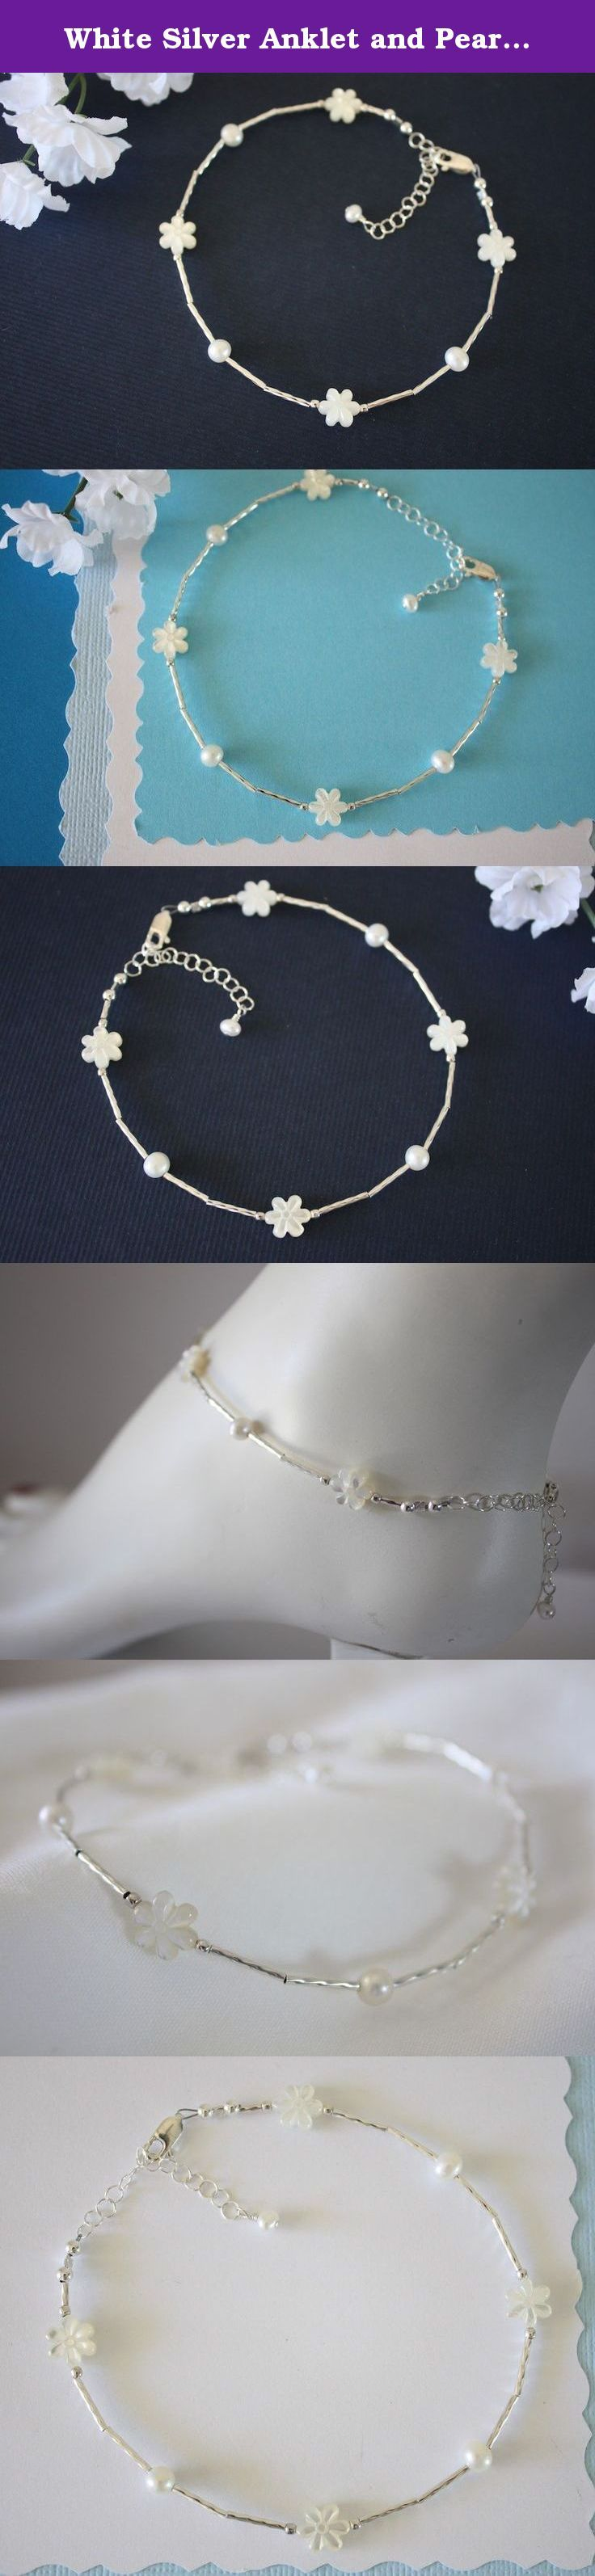 """White Silver Anklet and Pearl Anklet, Beach Wedding, Flower Bridesmaid Gift. This fun anklet goes with everything! Handmade with beautiful Pearls, hand carved Mother of Pearl flowers and Liquid Sterling Silver.*** Average length is 10"""" but choose your length upon checkout. Comes with organza gift pouch, ready for gift giving."""